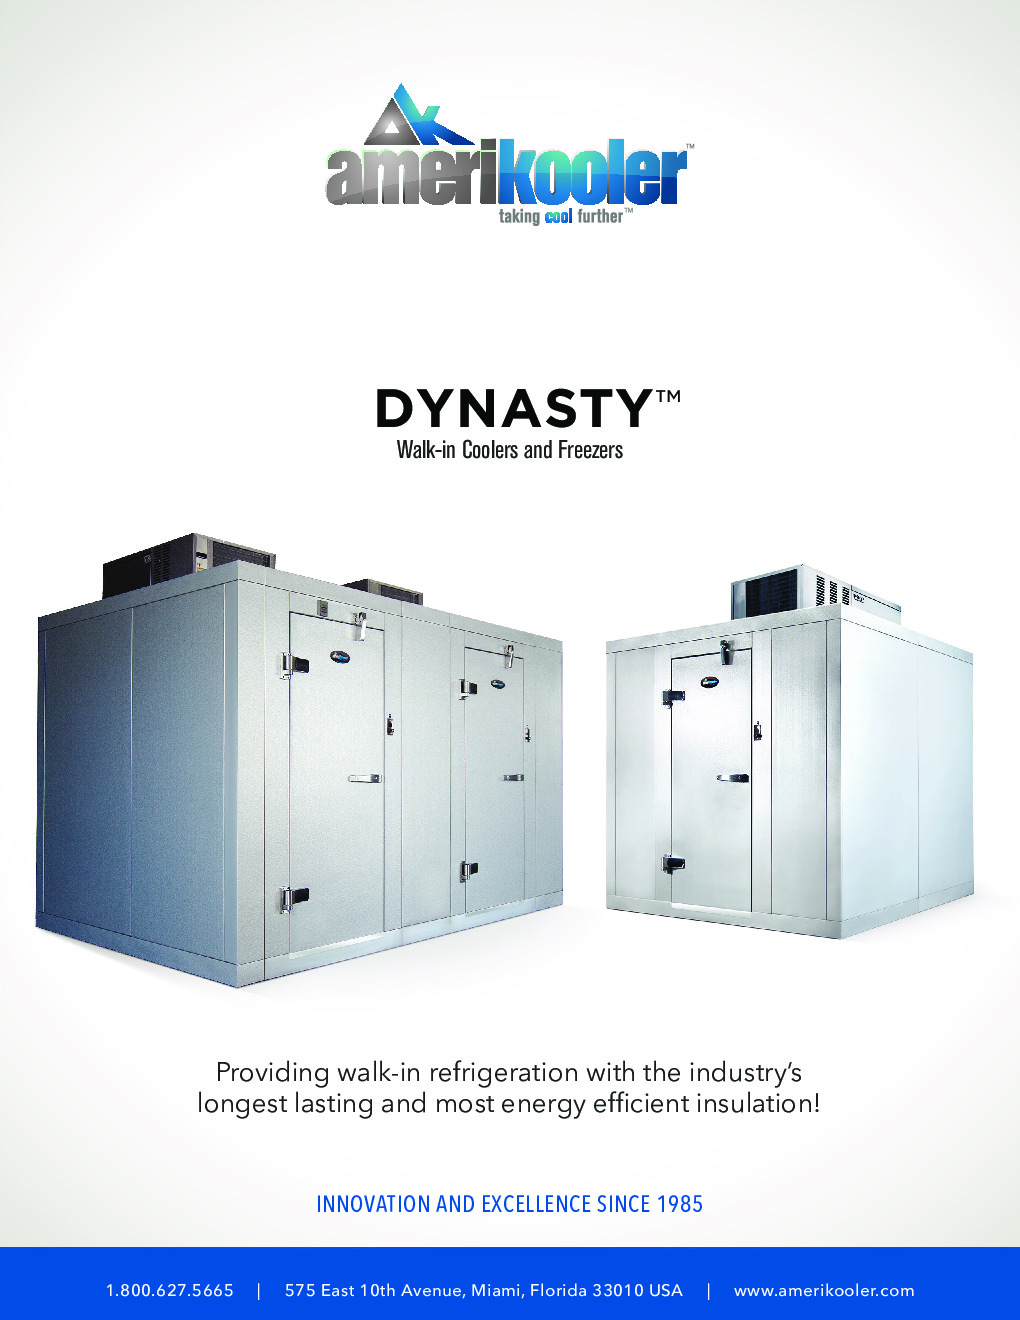 AmeriKooler DW091477N-7/7 Indoor 9' X 14' Walk-In, 7' L Cooler without Floor and 7' L Freezer, Box Only